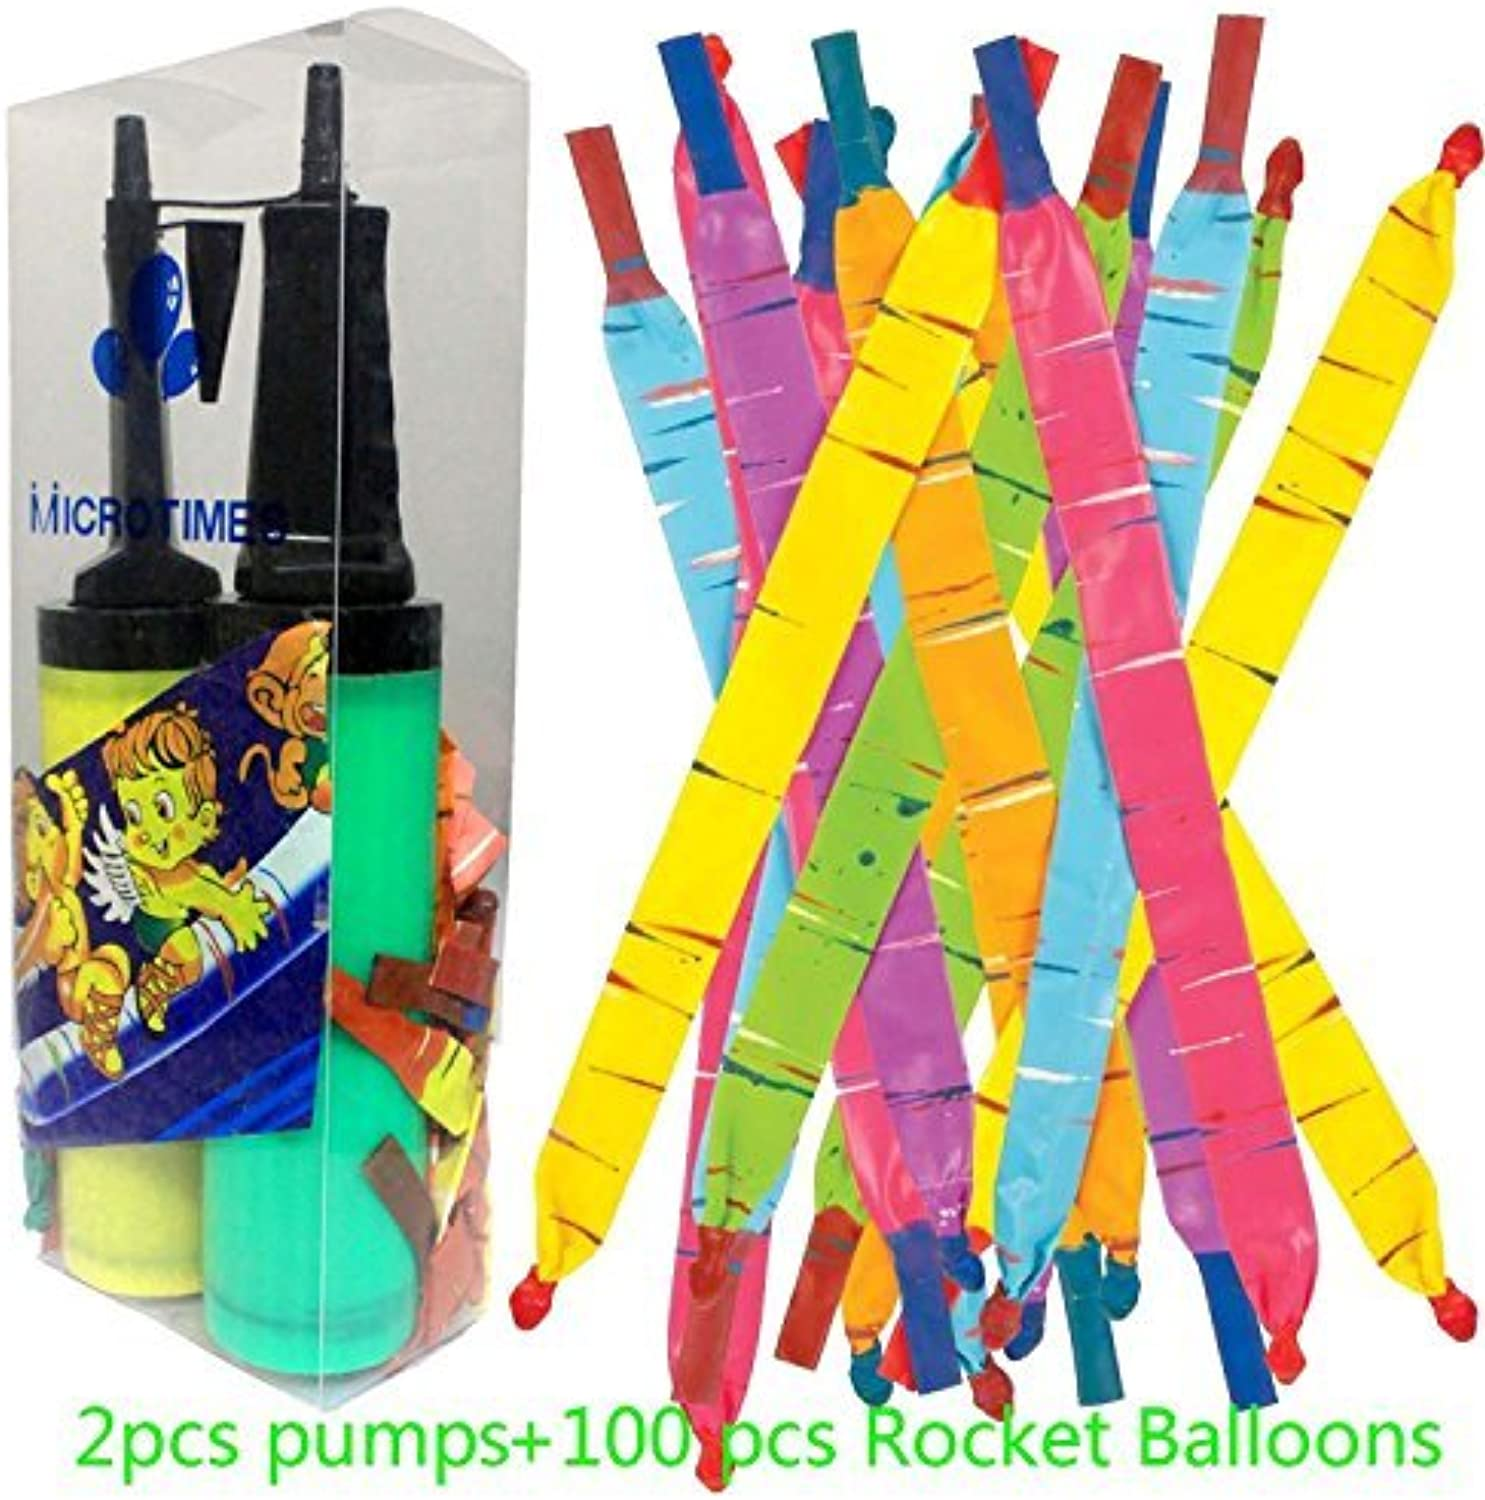 Micredimes 100 PCS Toy Rocket Balloons,Giant Rocket balloons refill with Pair of Pumps SET, Party Favor Supplies Long Balloon Flying Whistling(colors may vary) by Micredimes